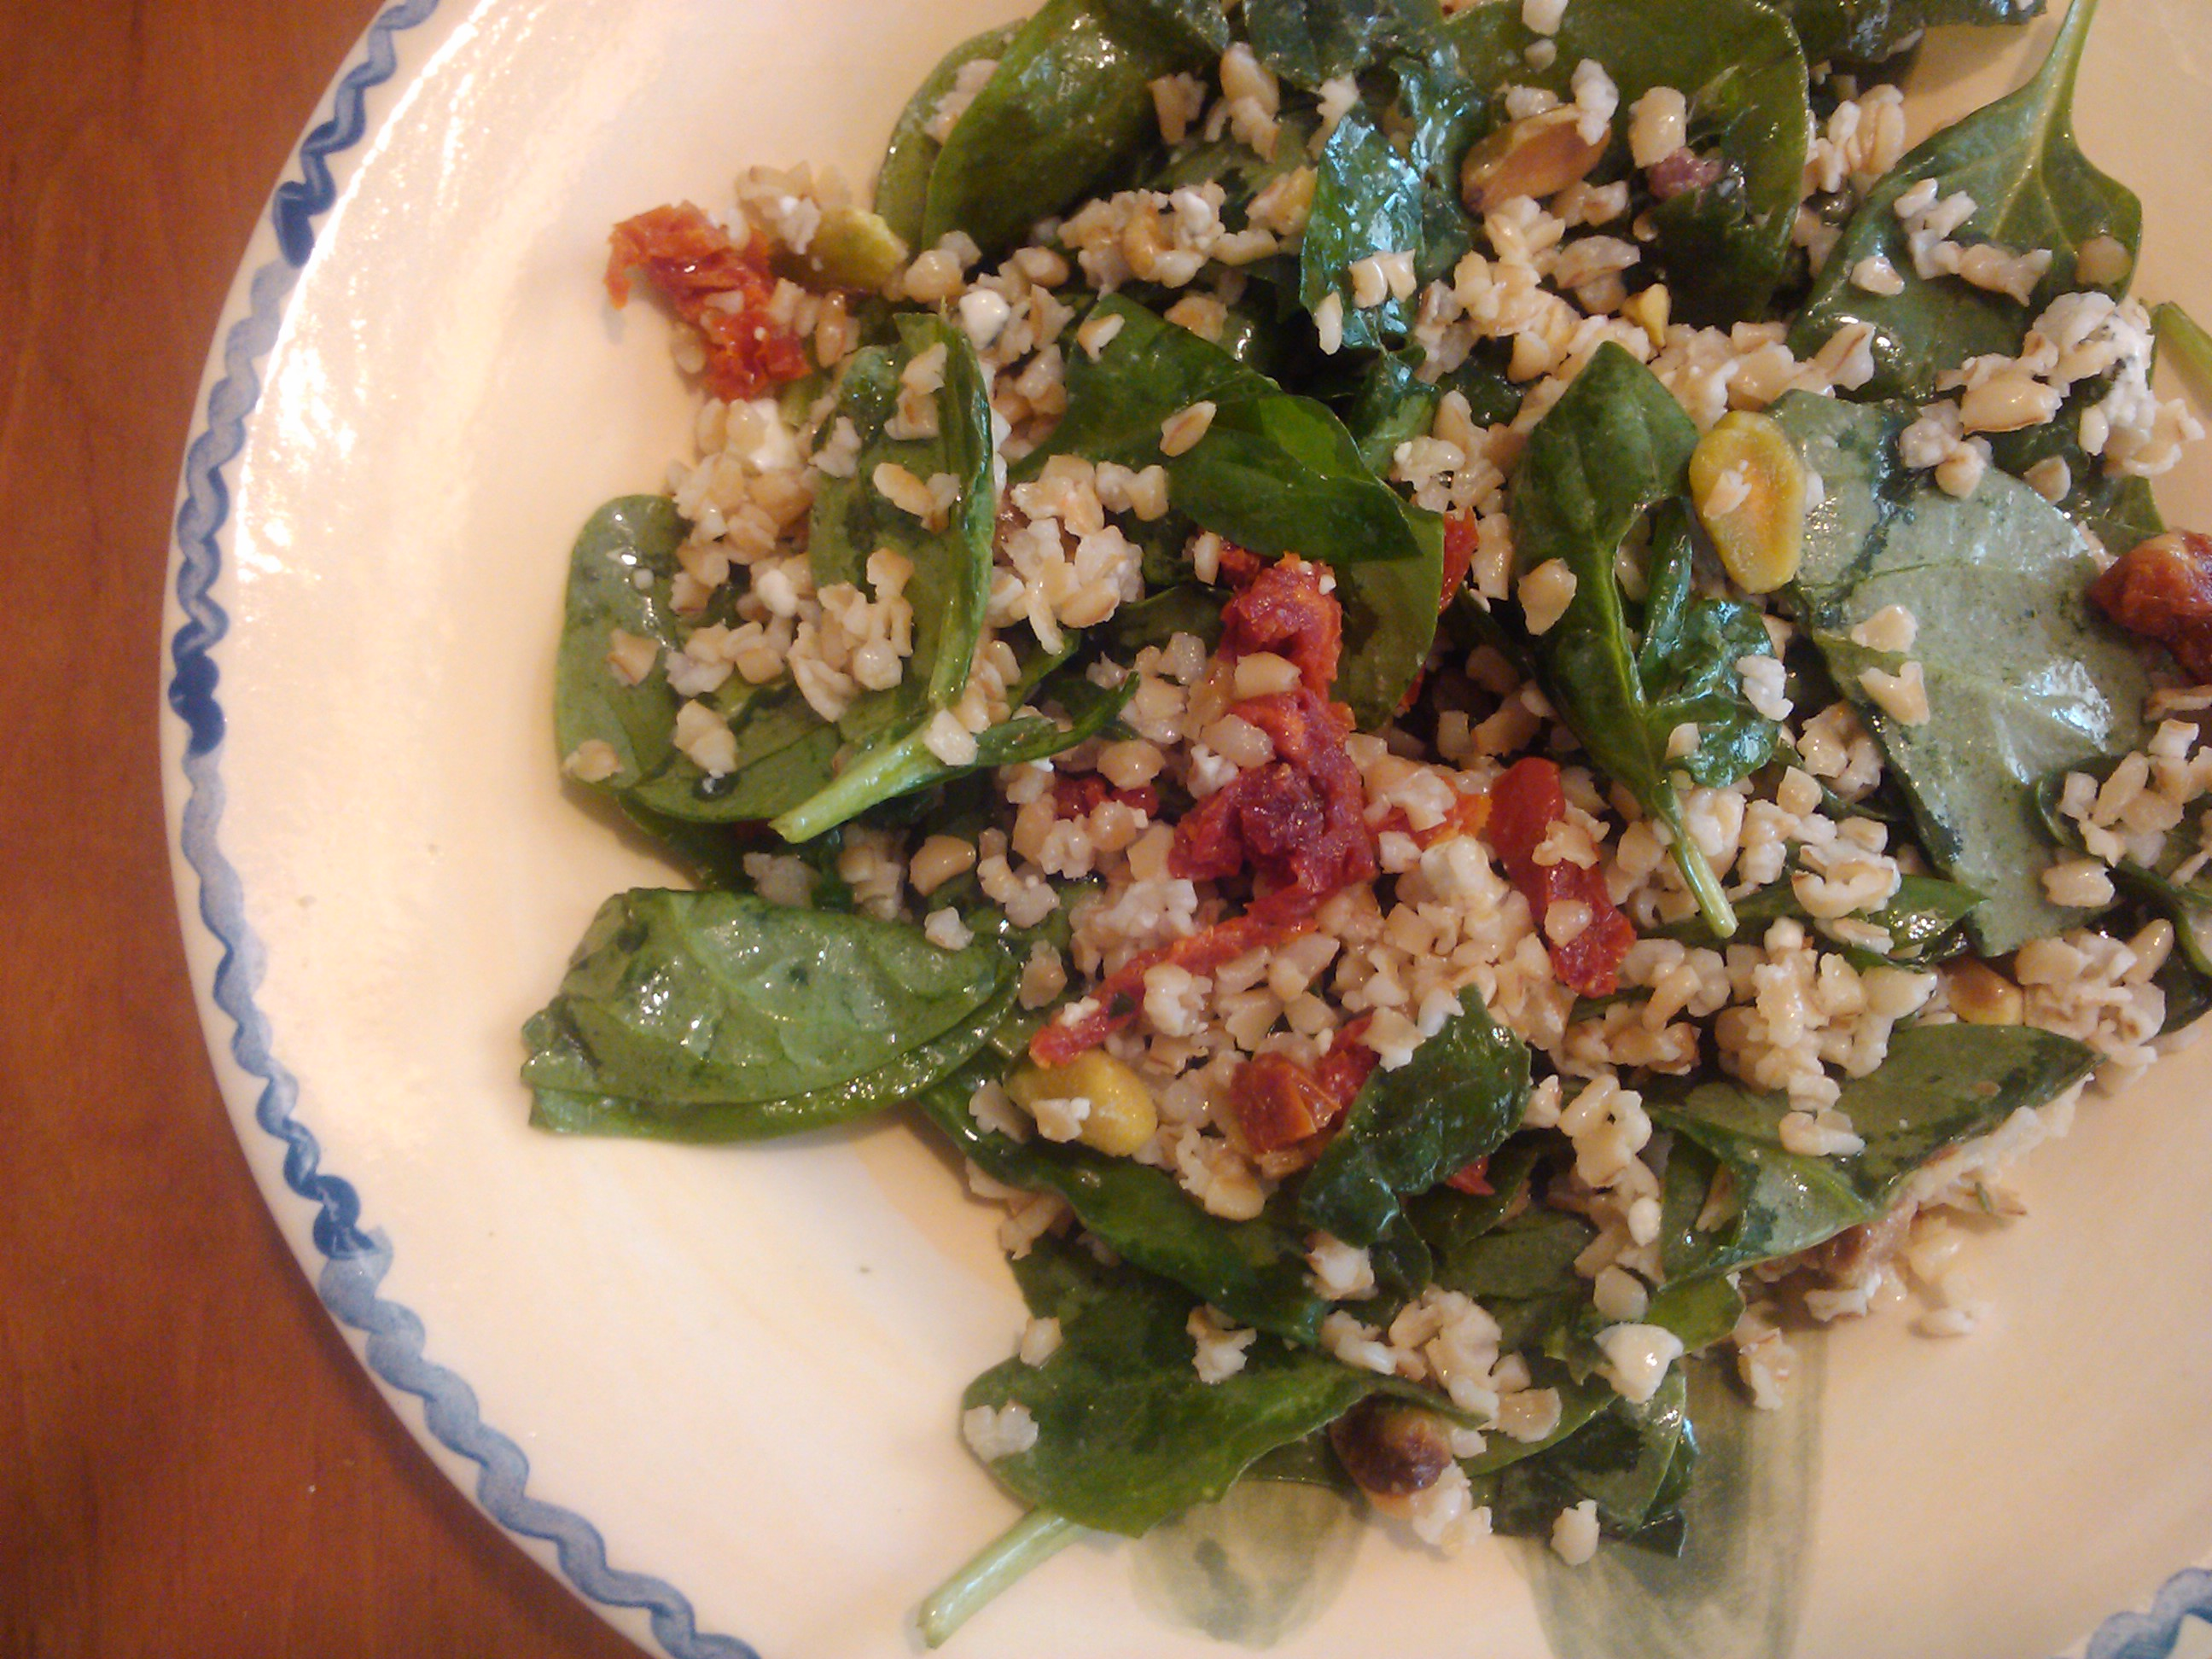 No-Cook Spinach-Bulgar Salad with Sun-Dried Tomatoes & Blue Cheese